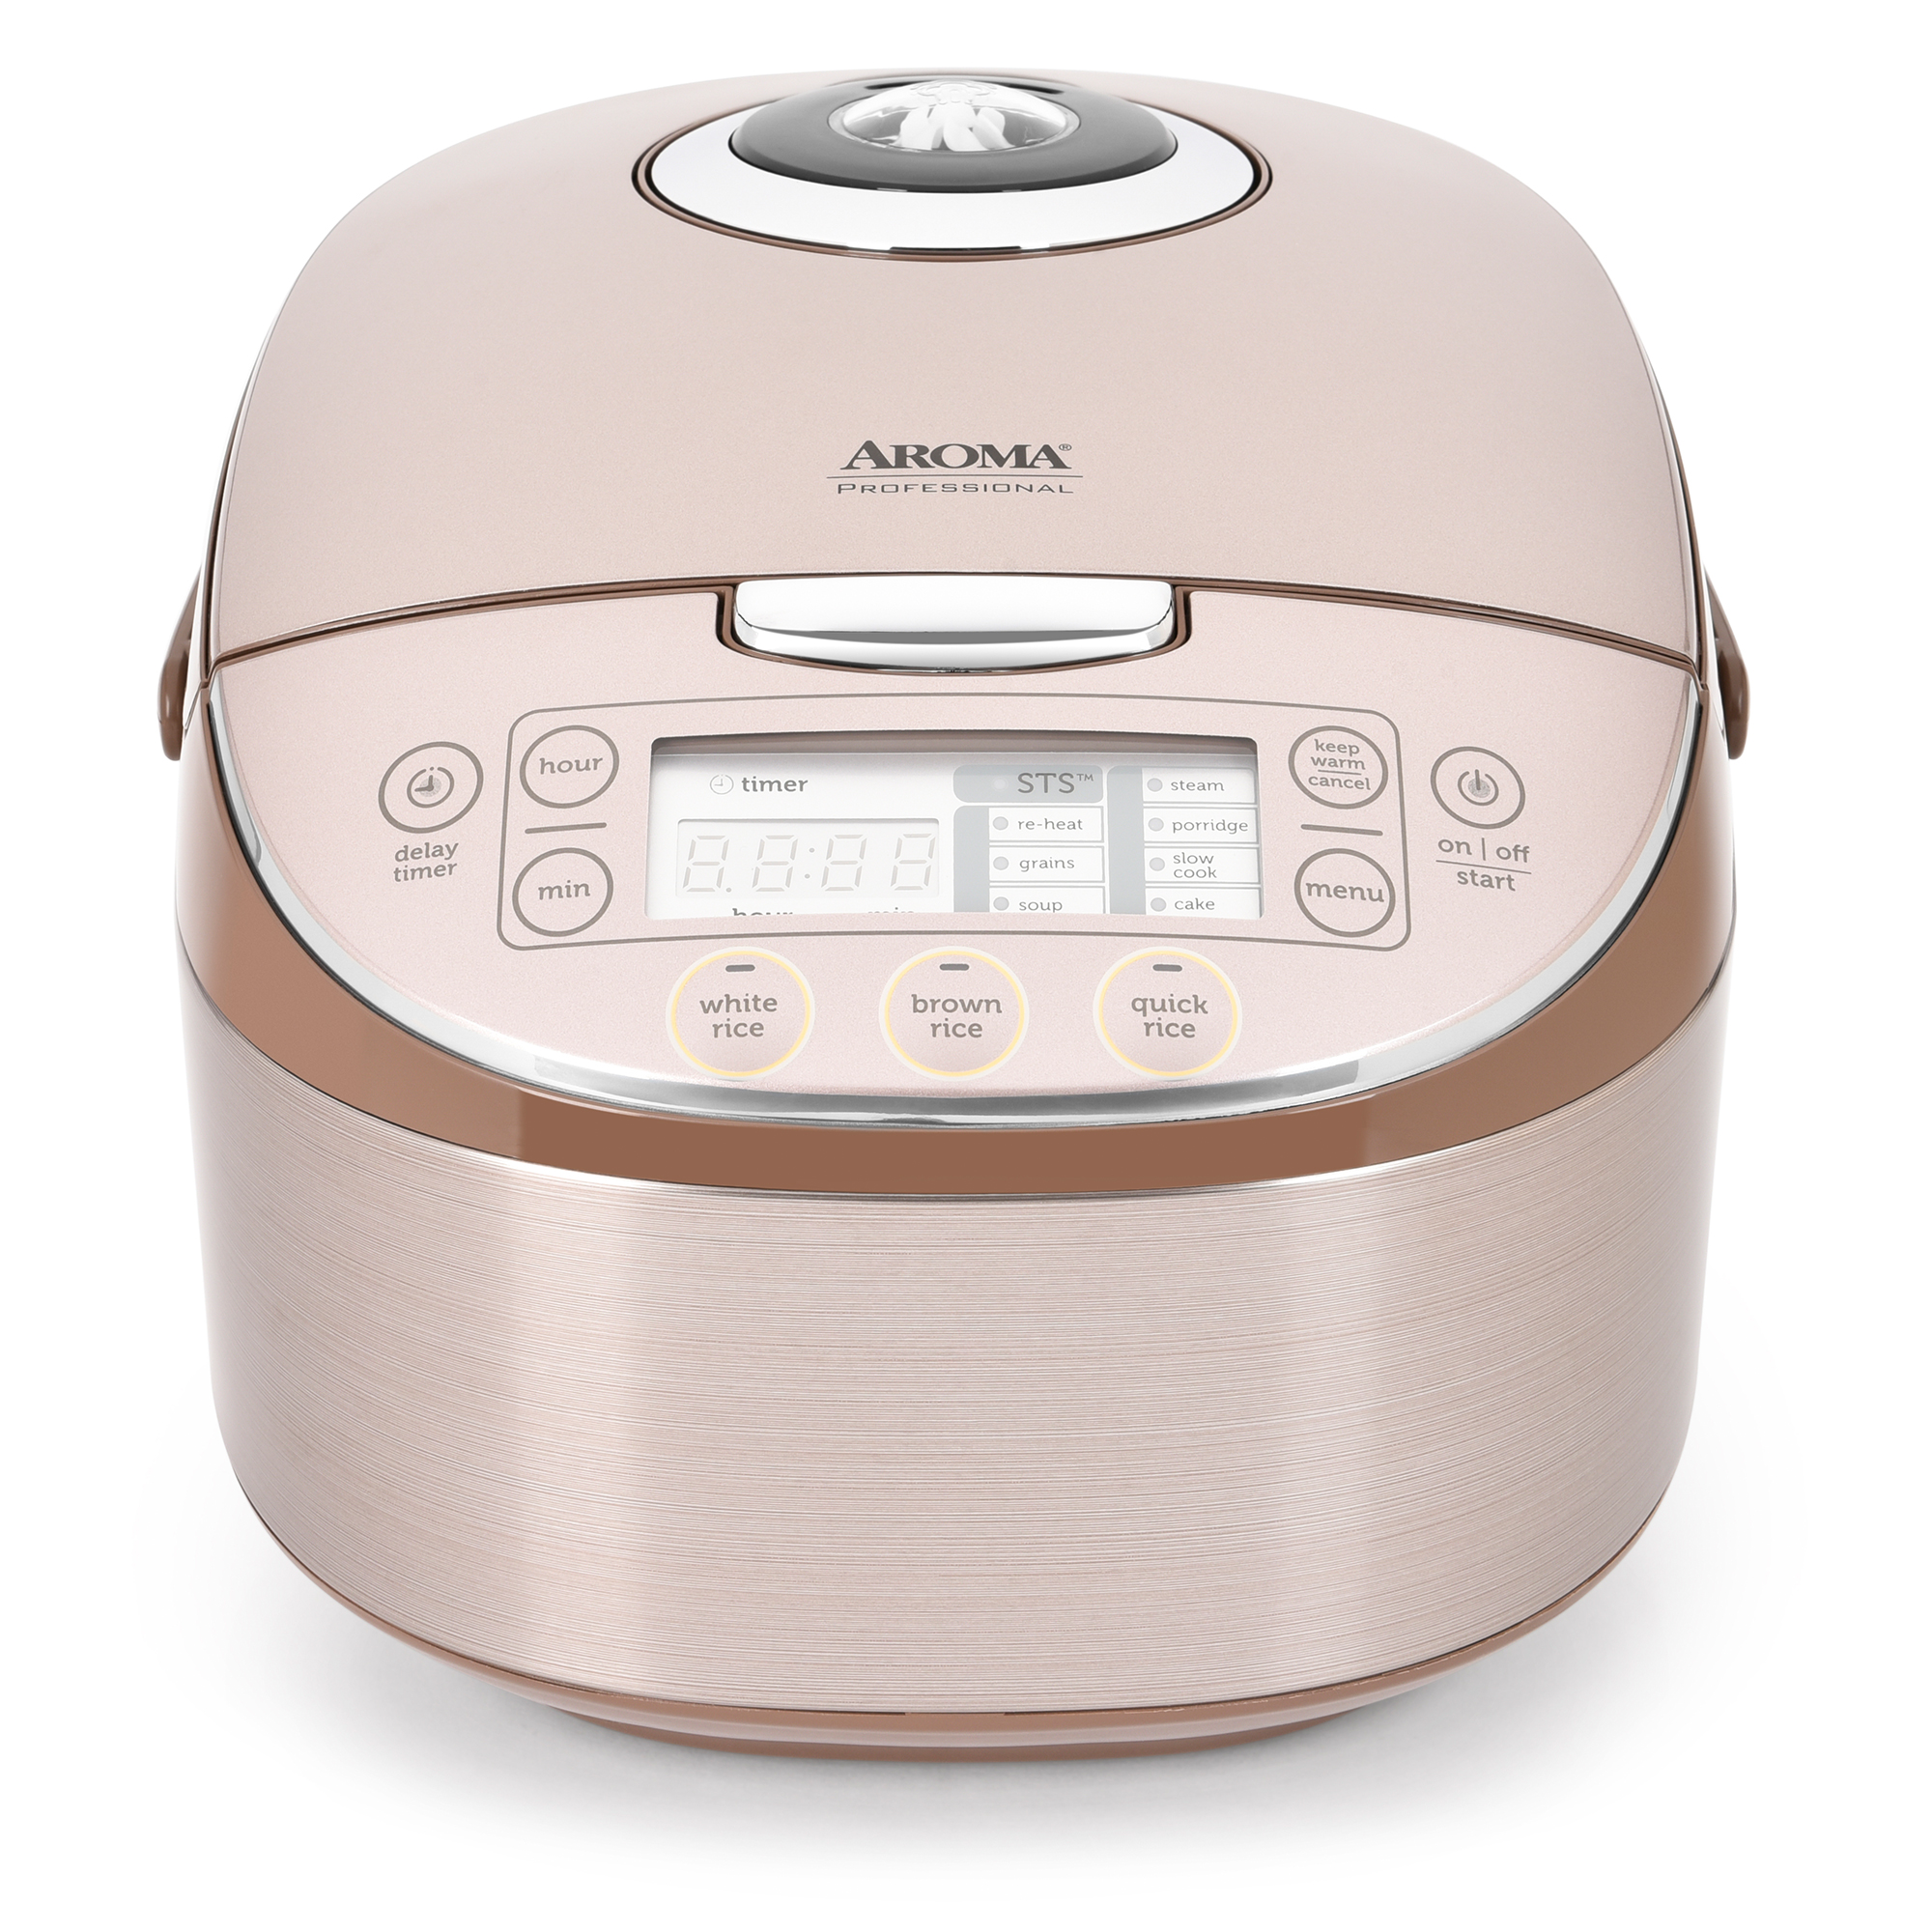 Aroma Turbo Convection Multicooker | Rice Cooker